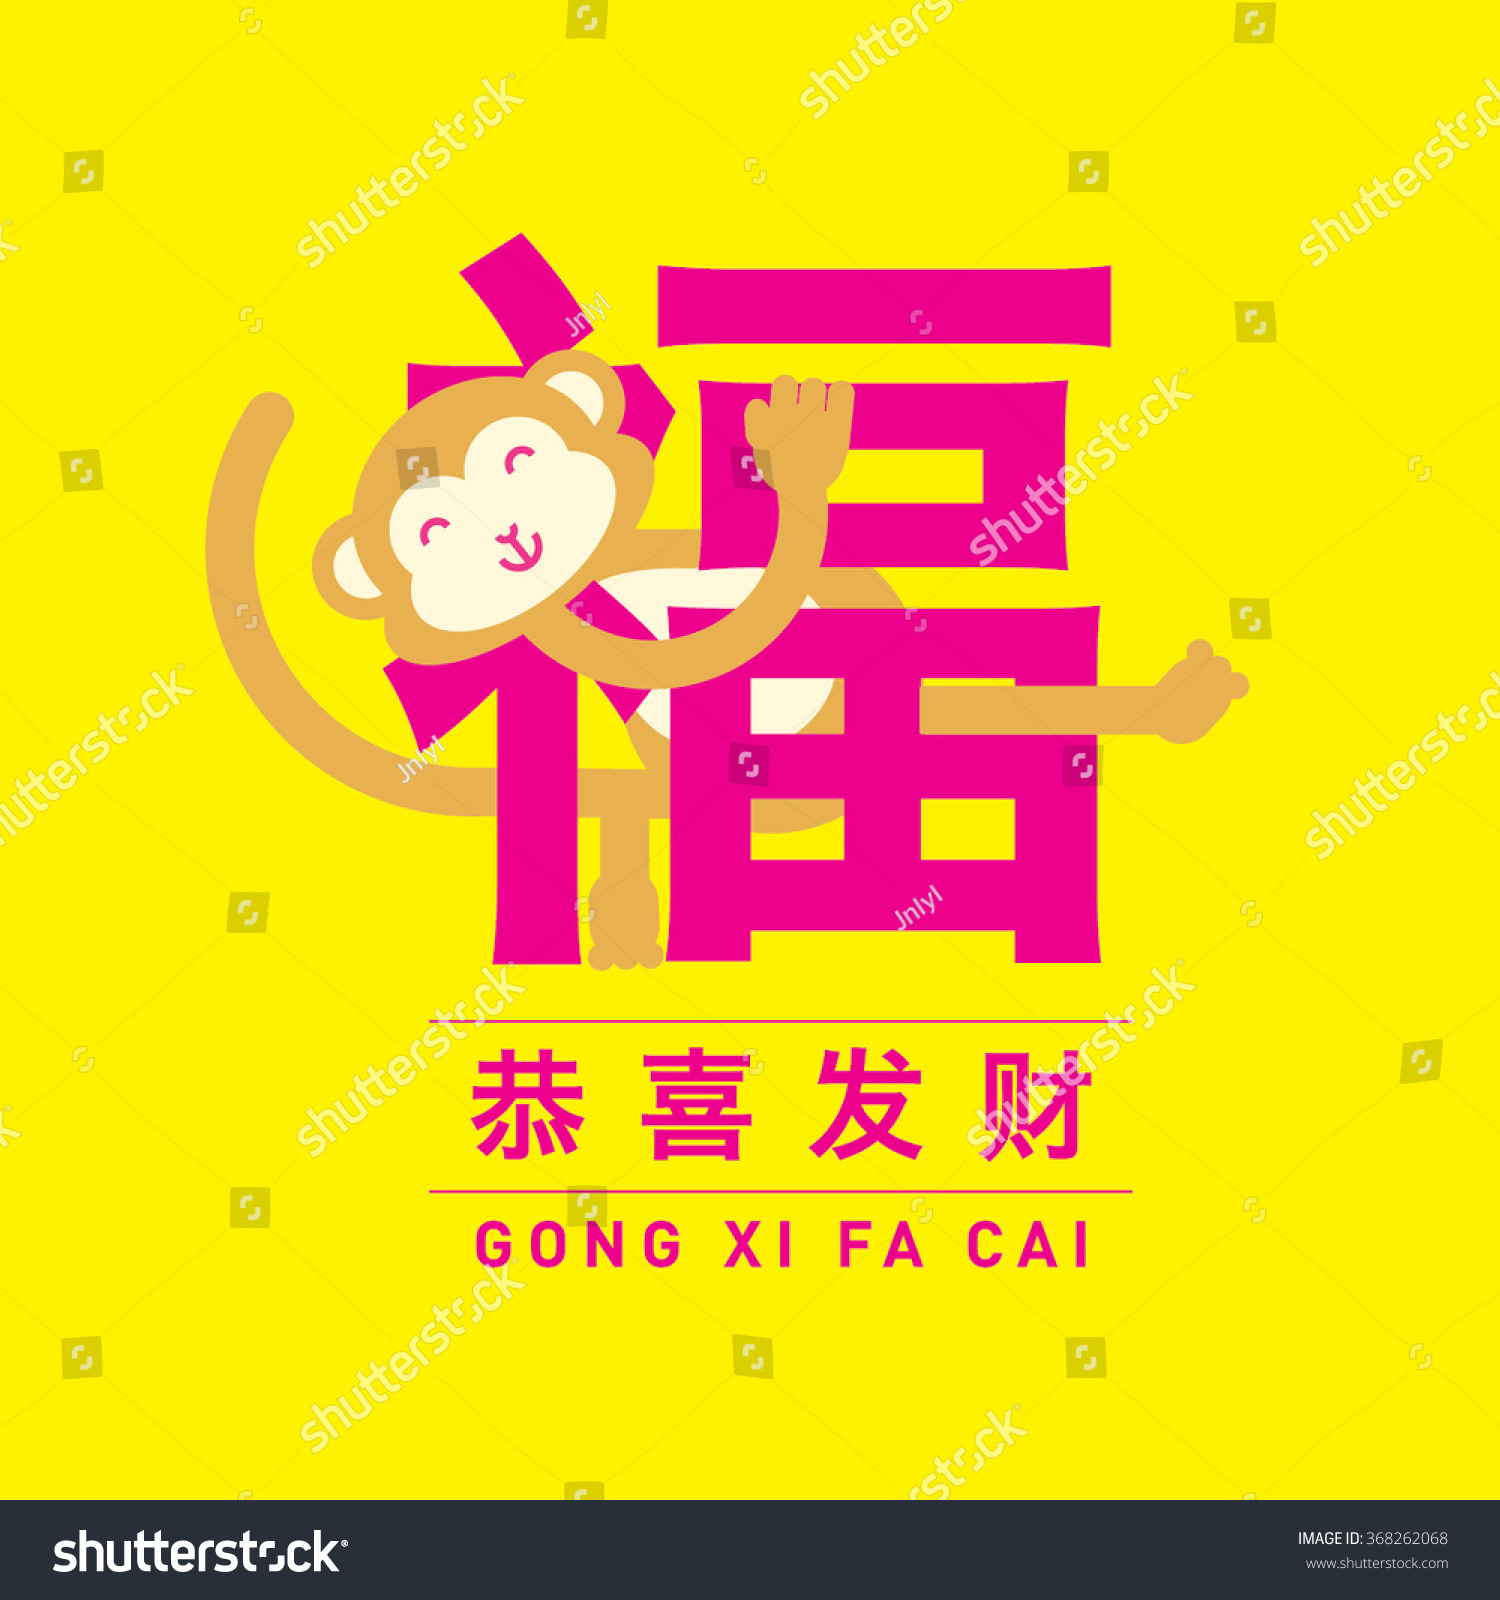 Royalty Free Chinese New Year Greetings With Monkey 368262068